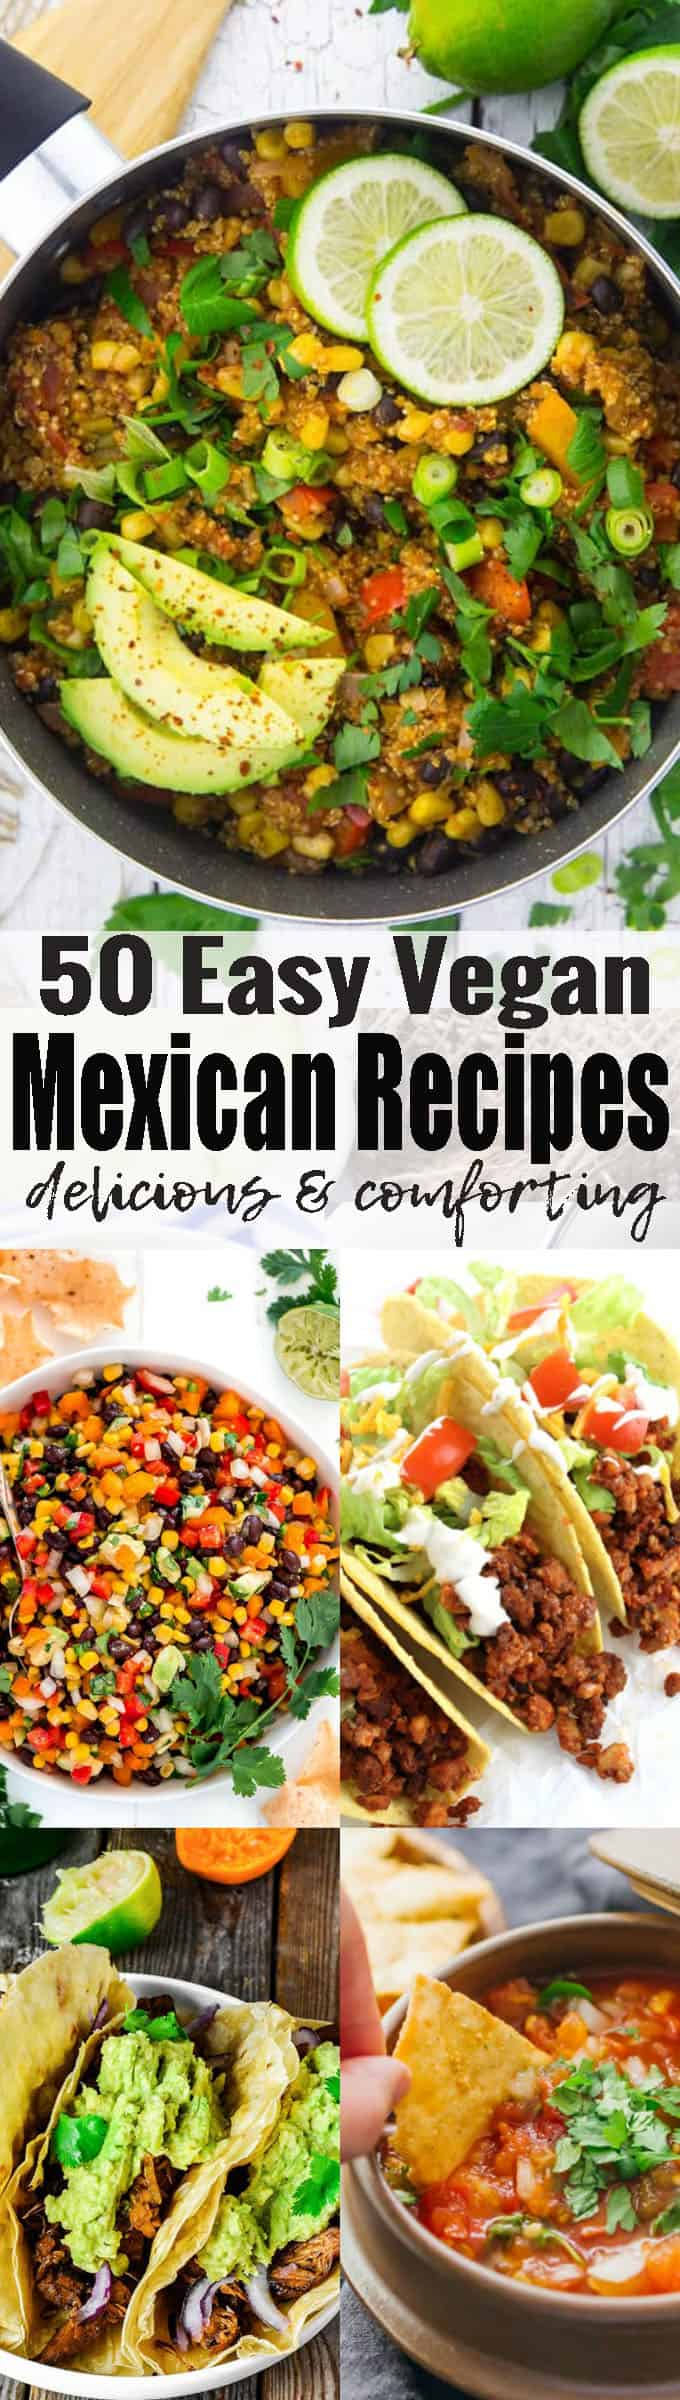 If you like Mexican food, you will love these 38 vegan Mexican recipes! We've got vegan tacos, vegan burritos, vegan enchilada, and so much more! Vegan comfort food at its best! Find more vegan recipes at veganheaven.org <3